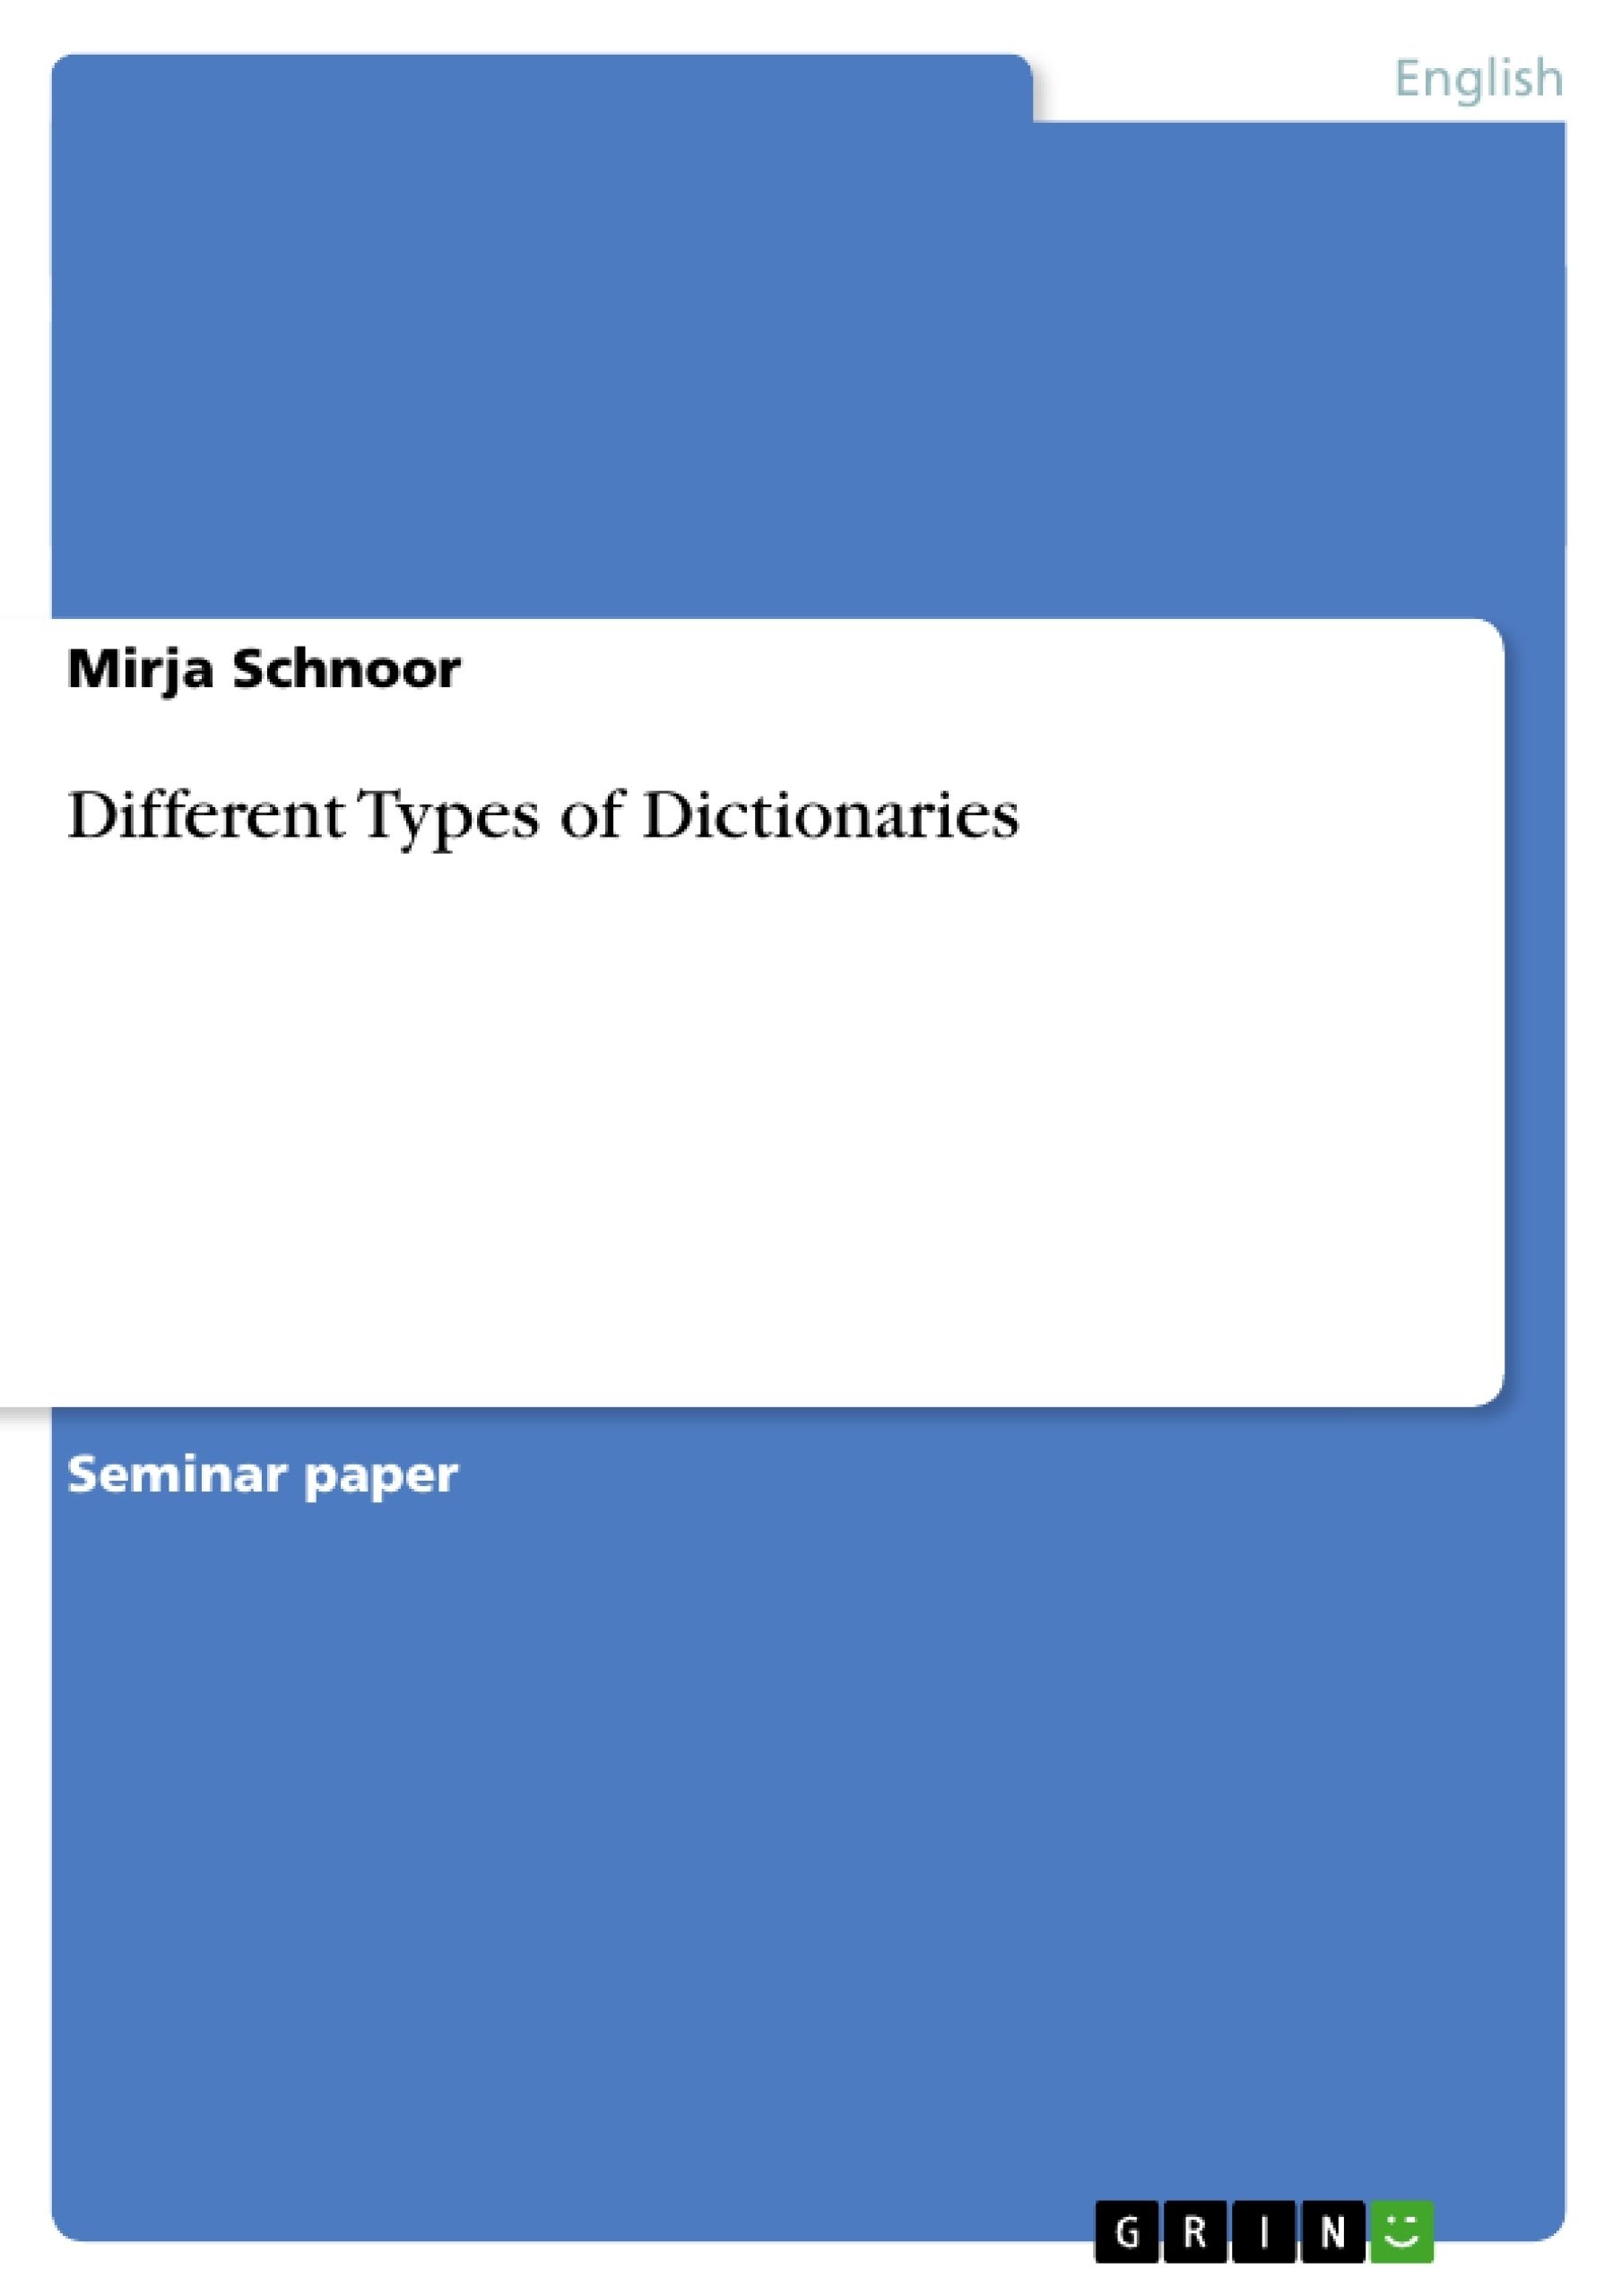 GRIN - Different Types of Dictionaries